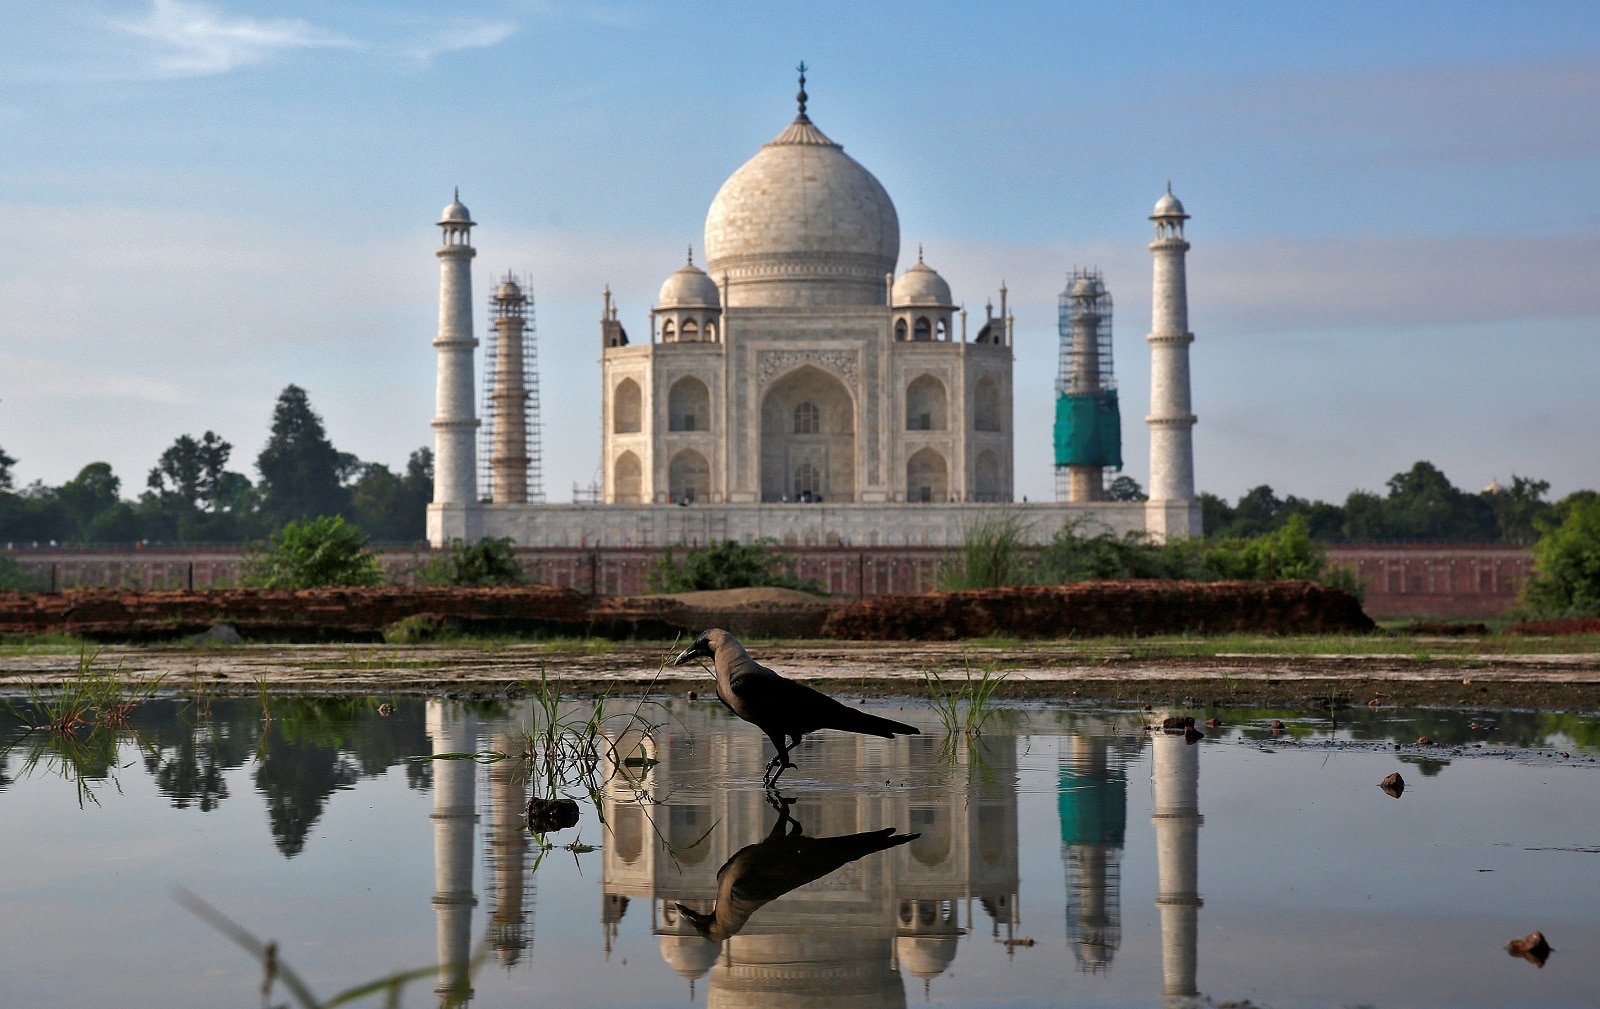 Taj Mahal, Uttar Pradesh: An immense mausoleum of white marble, built in Agra between 1631 and 1648 by order of the Mughal emperor Shah Jahan in memory of his favourite wife, the Taj Mahal is the jewel of Muslim art in India and one of the universally admired masterpieces of the world's heritage. (Image: Reuters)